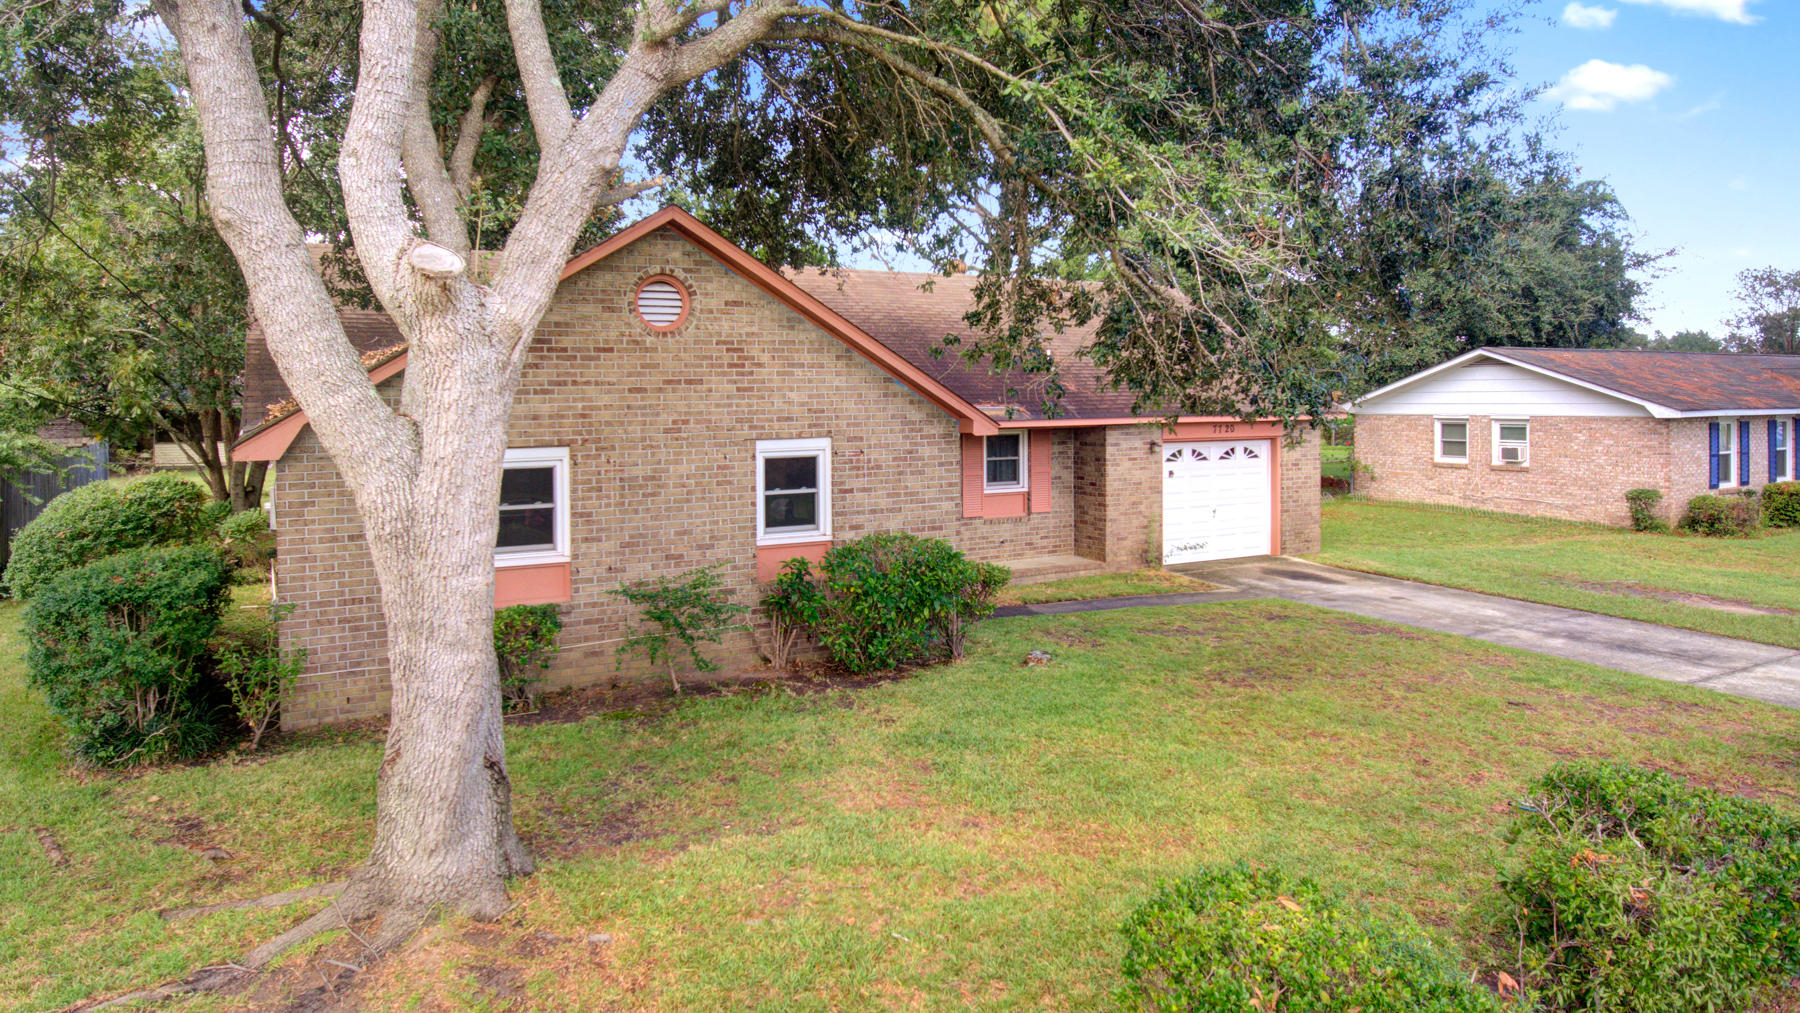 7720 Peggy Drive North Charleston, Sc 29418